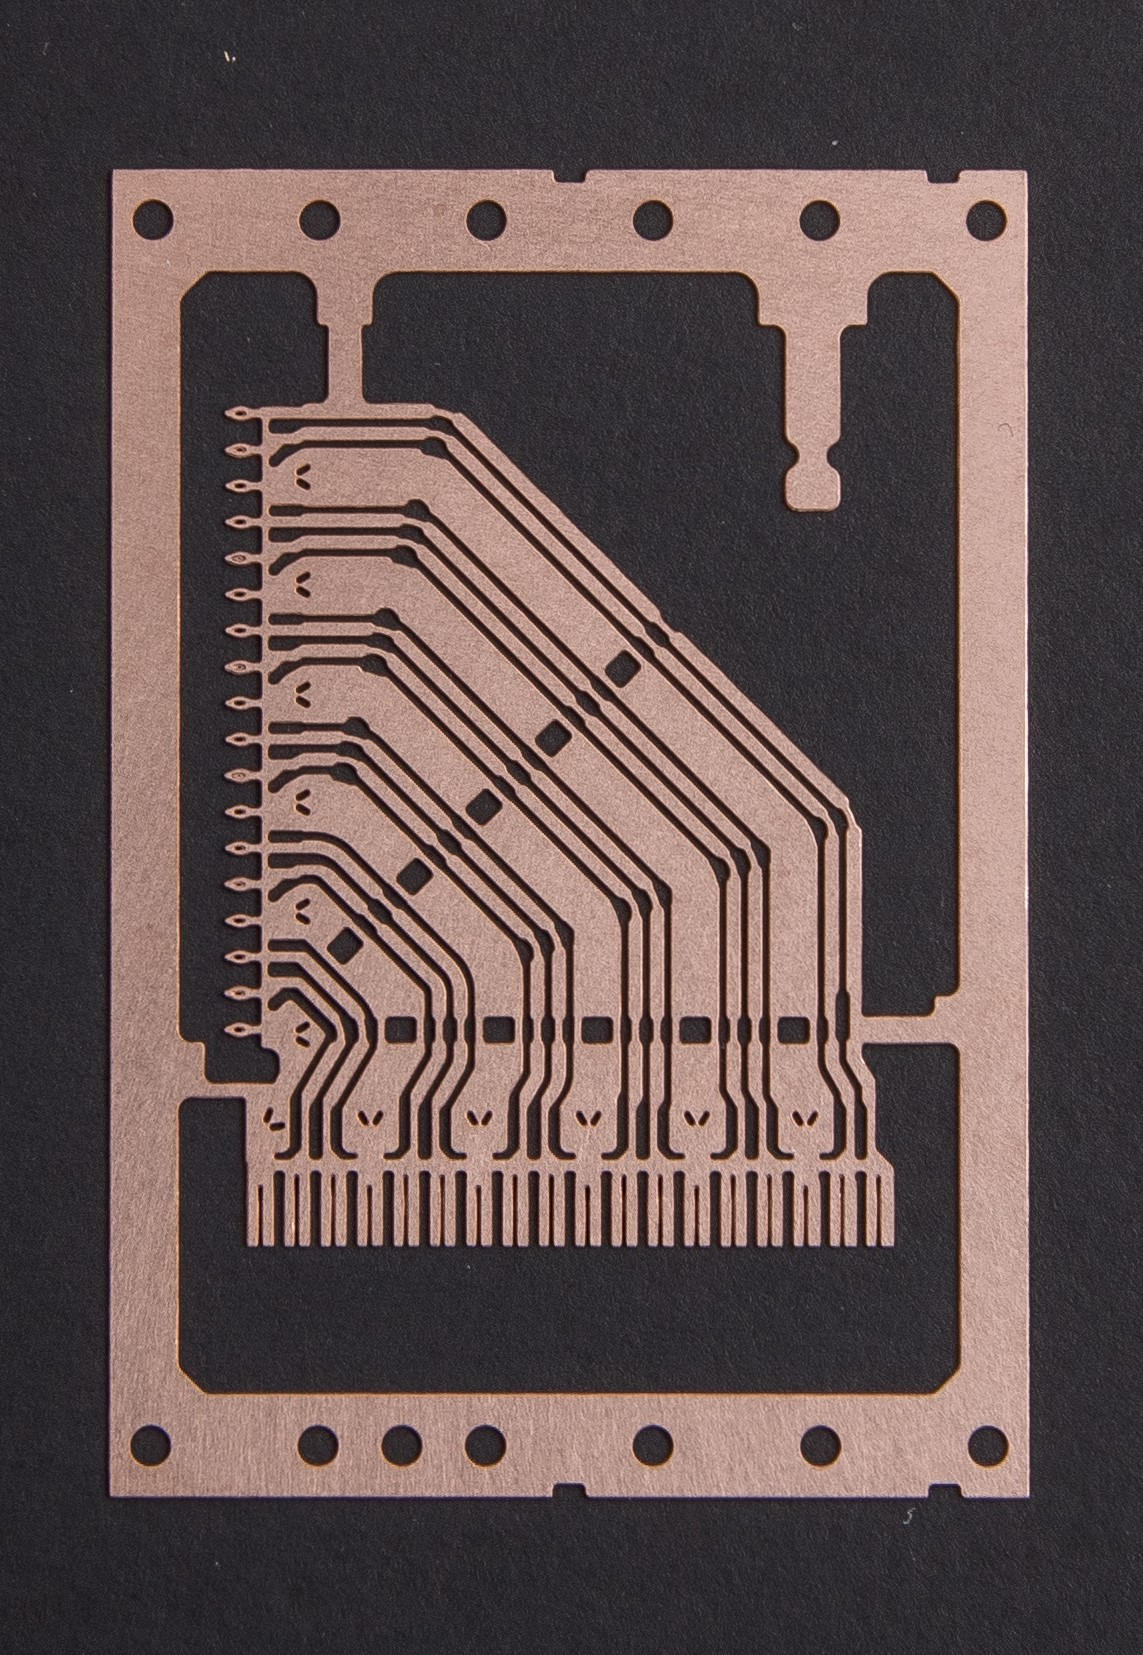 gallery etching flex circuits